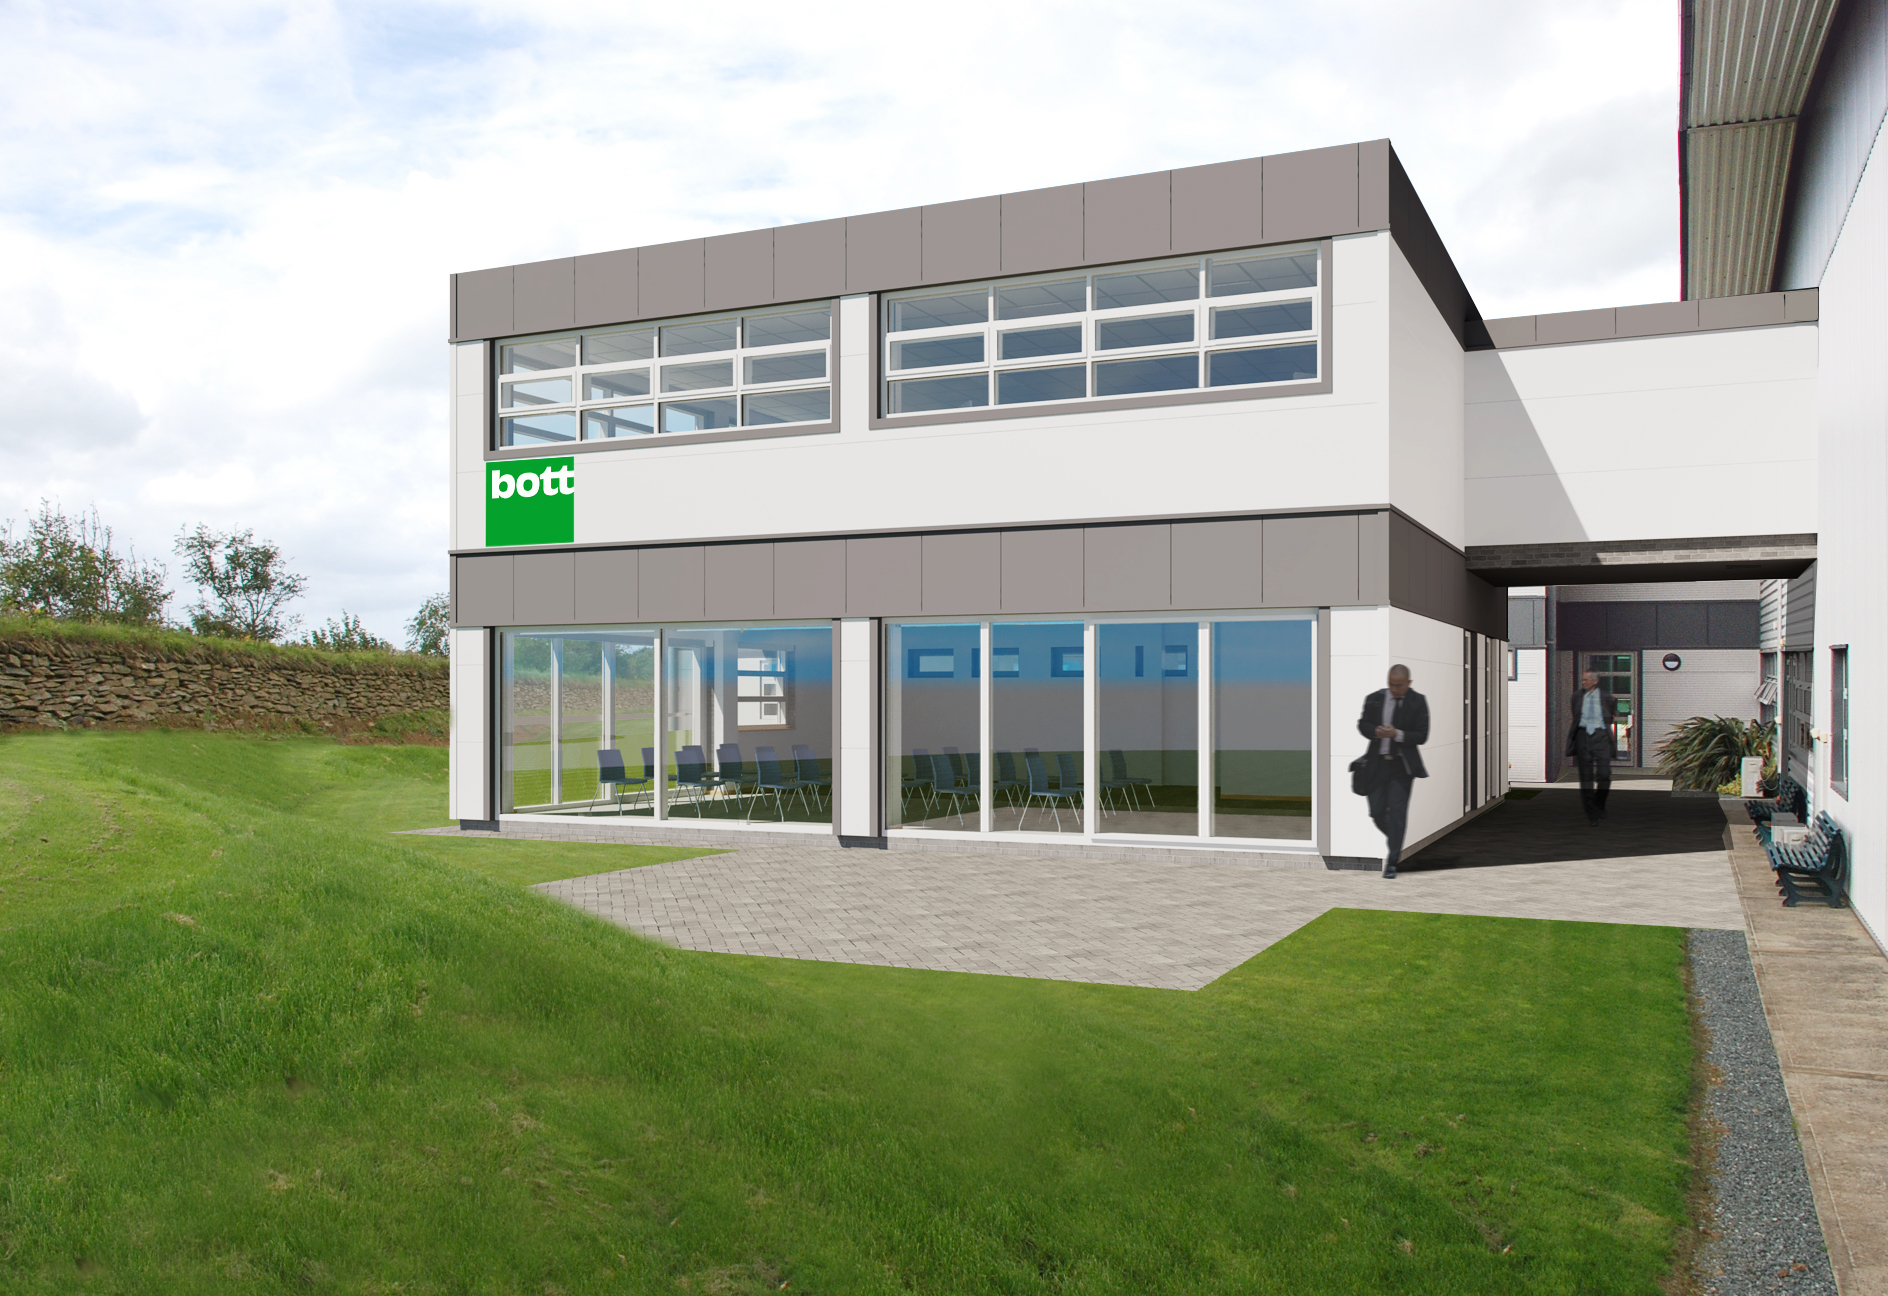 Proposed Extension for Bott Ltd in Bude